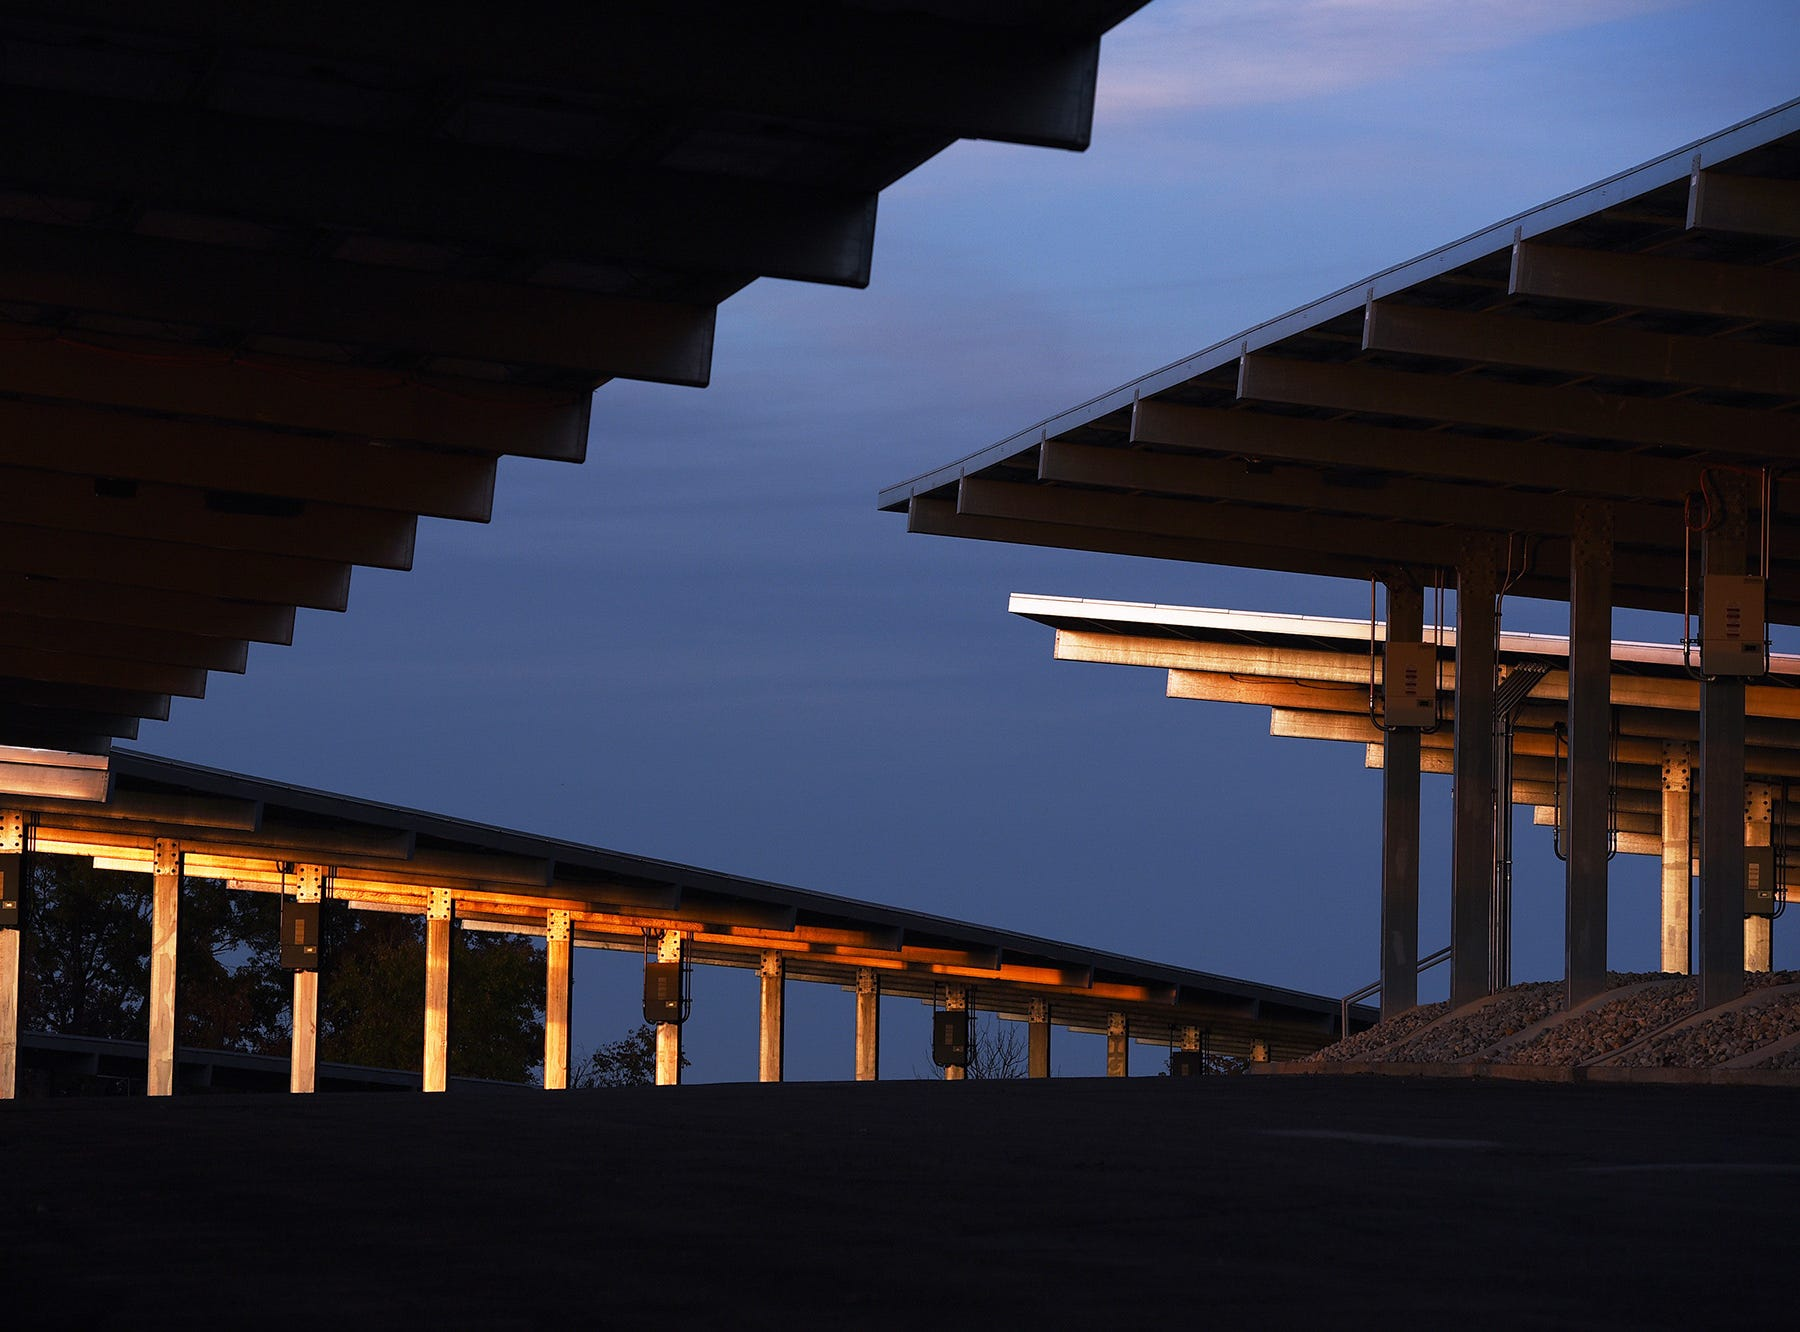 Steel beams at the parking lot reflect gold light from the sunset.